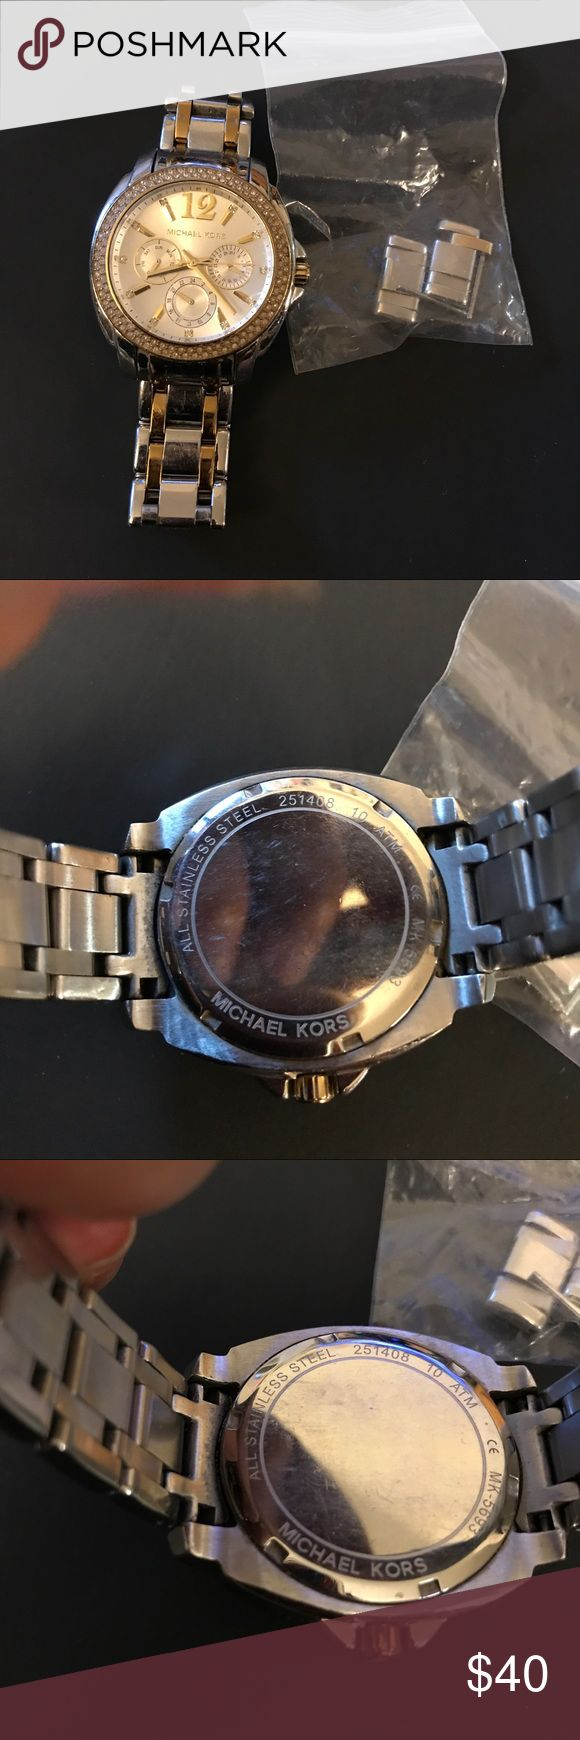 Michael Kors ladies watch -- PRE-owned With signs of wear - hairline scratches on the bracelet - rezised - but links are available. NO BOX NO TAG this is worn --- working fine - no missing stones - needs a bit of cleaning. Michael Kors Accessories Watches